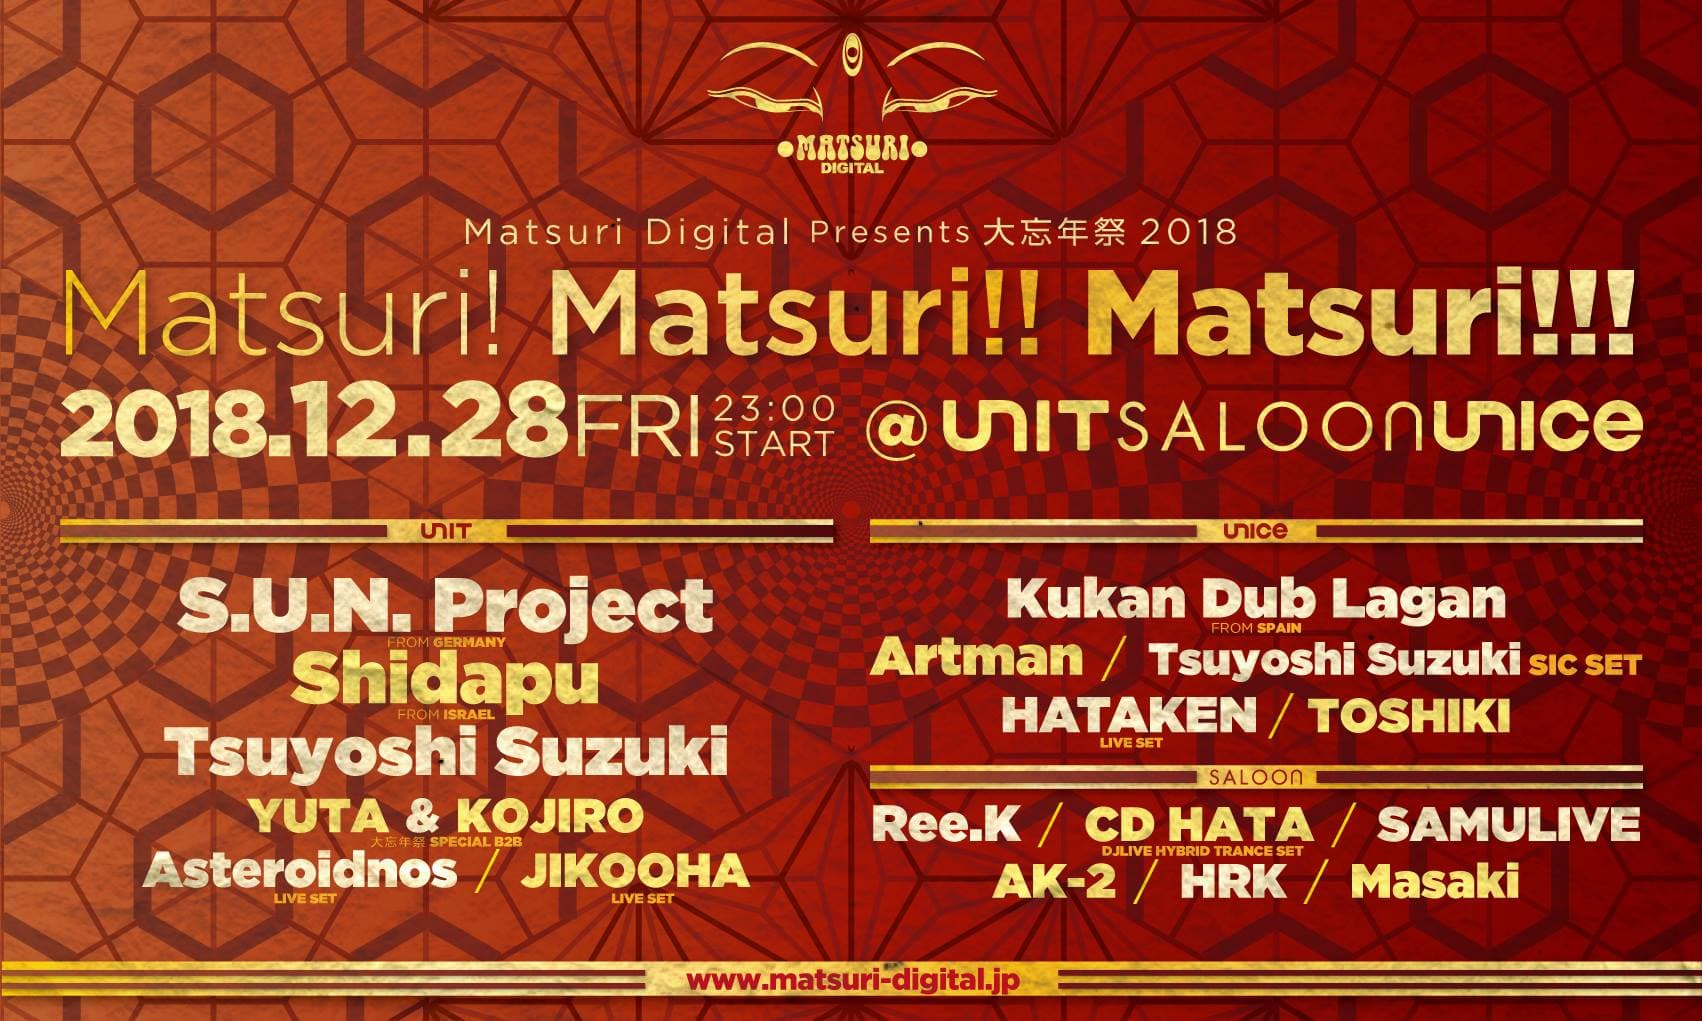 Matsuri Digital Presents 大忘年祭2018 – Matsuri! Matsuri! Matsuri!